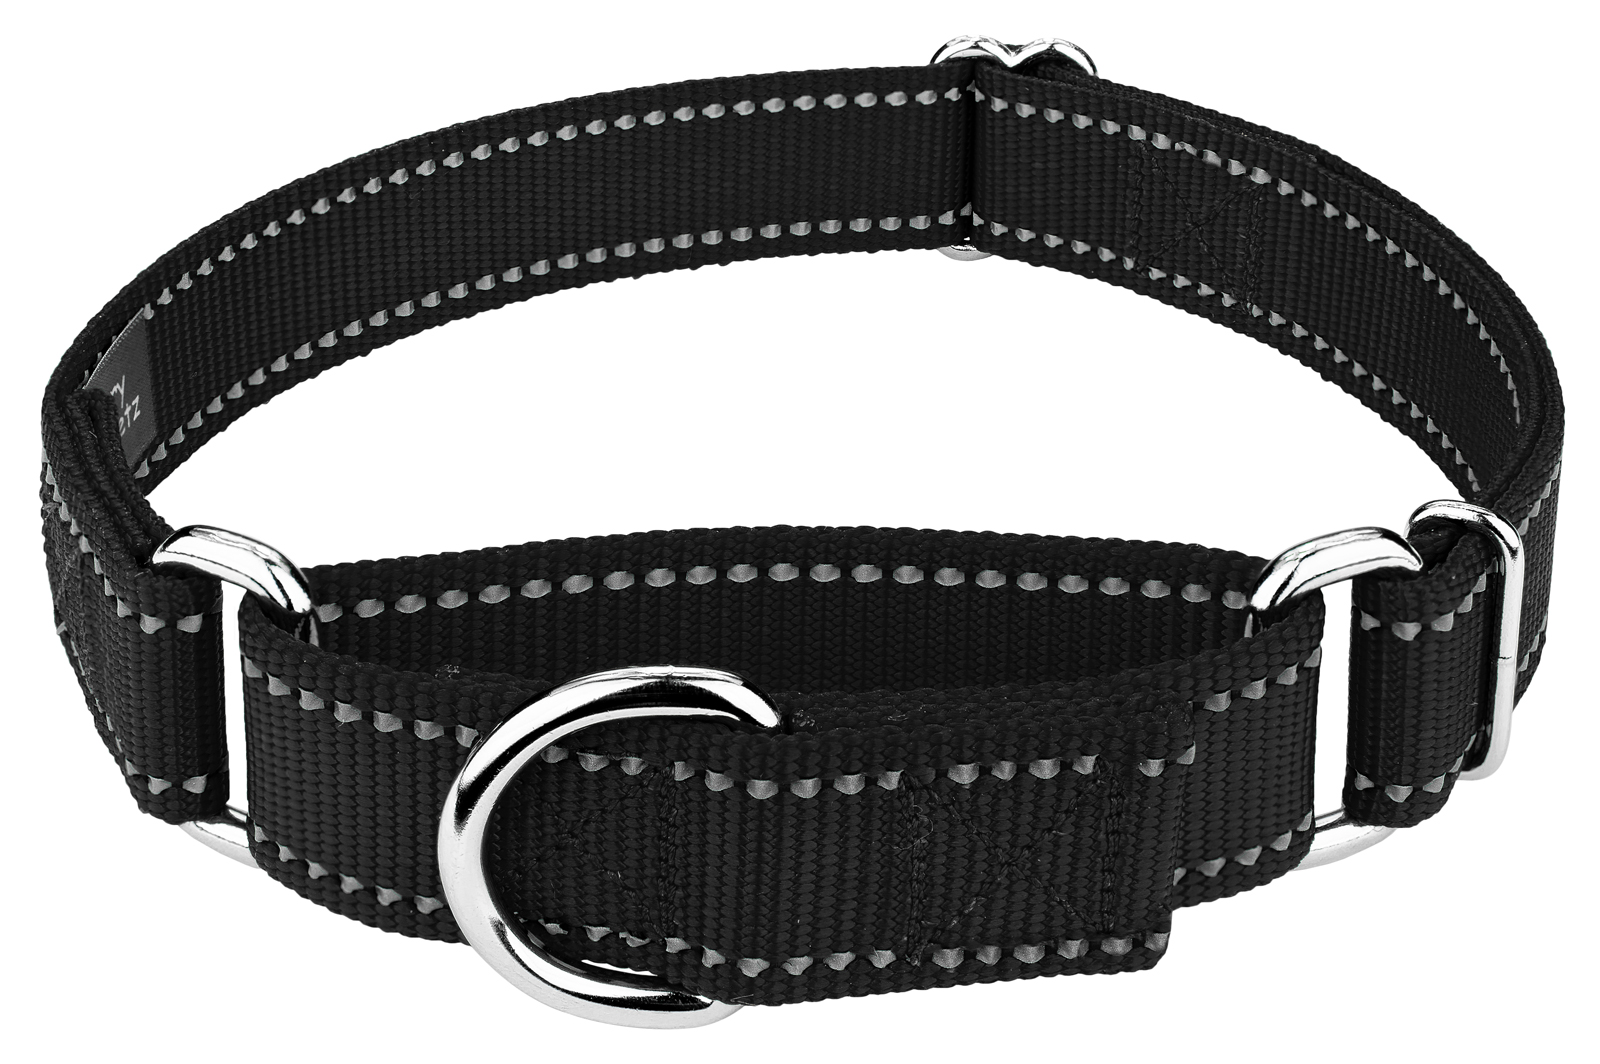 Country Brook Petz | Reflective Nylon Martingale Dog Collar by Country Brook Petz